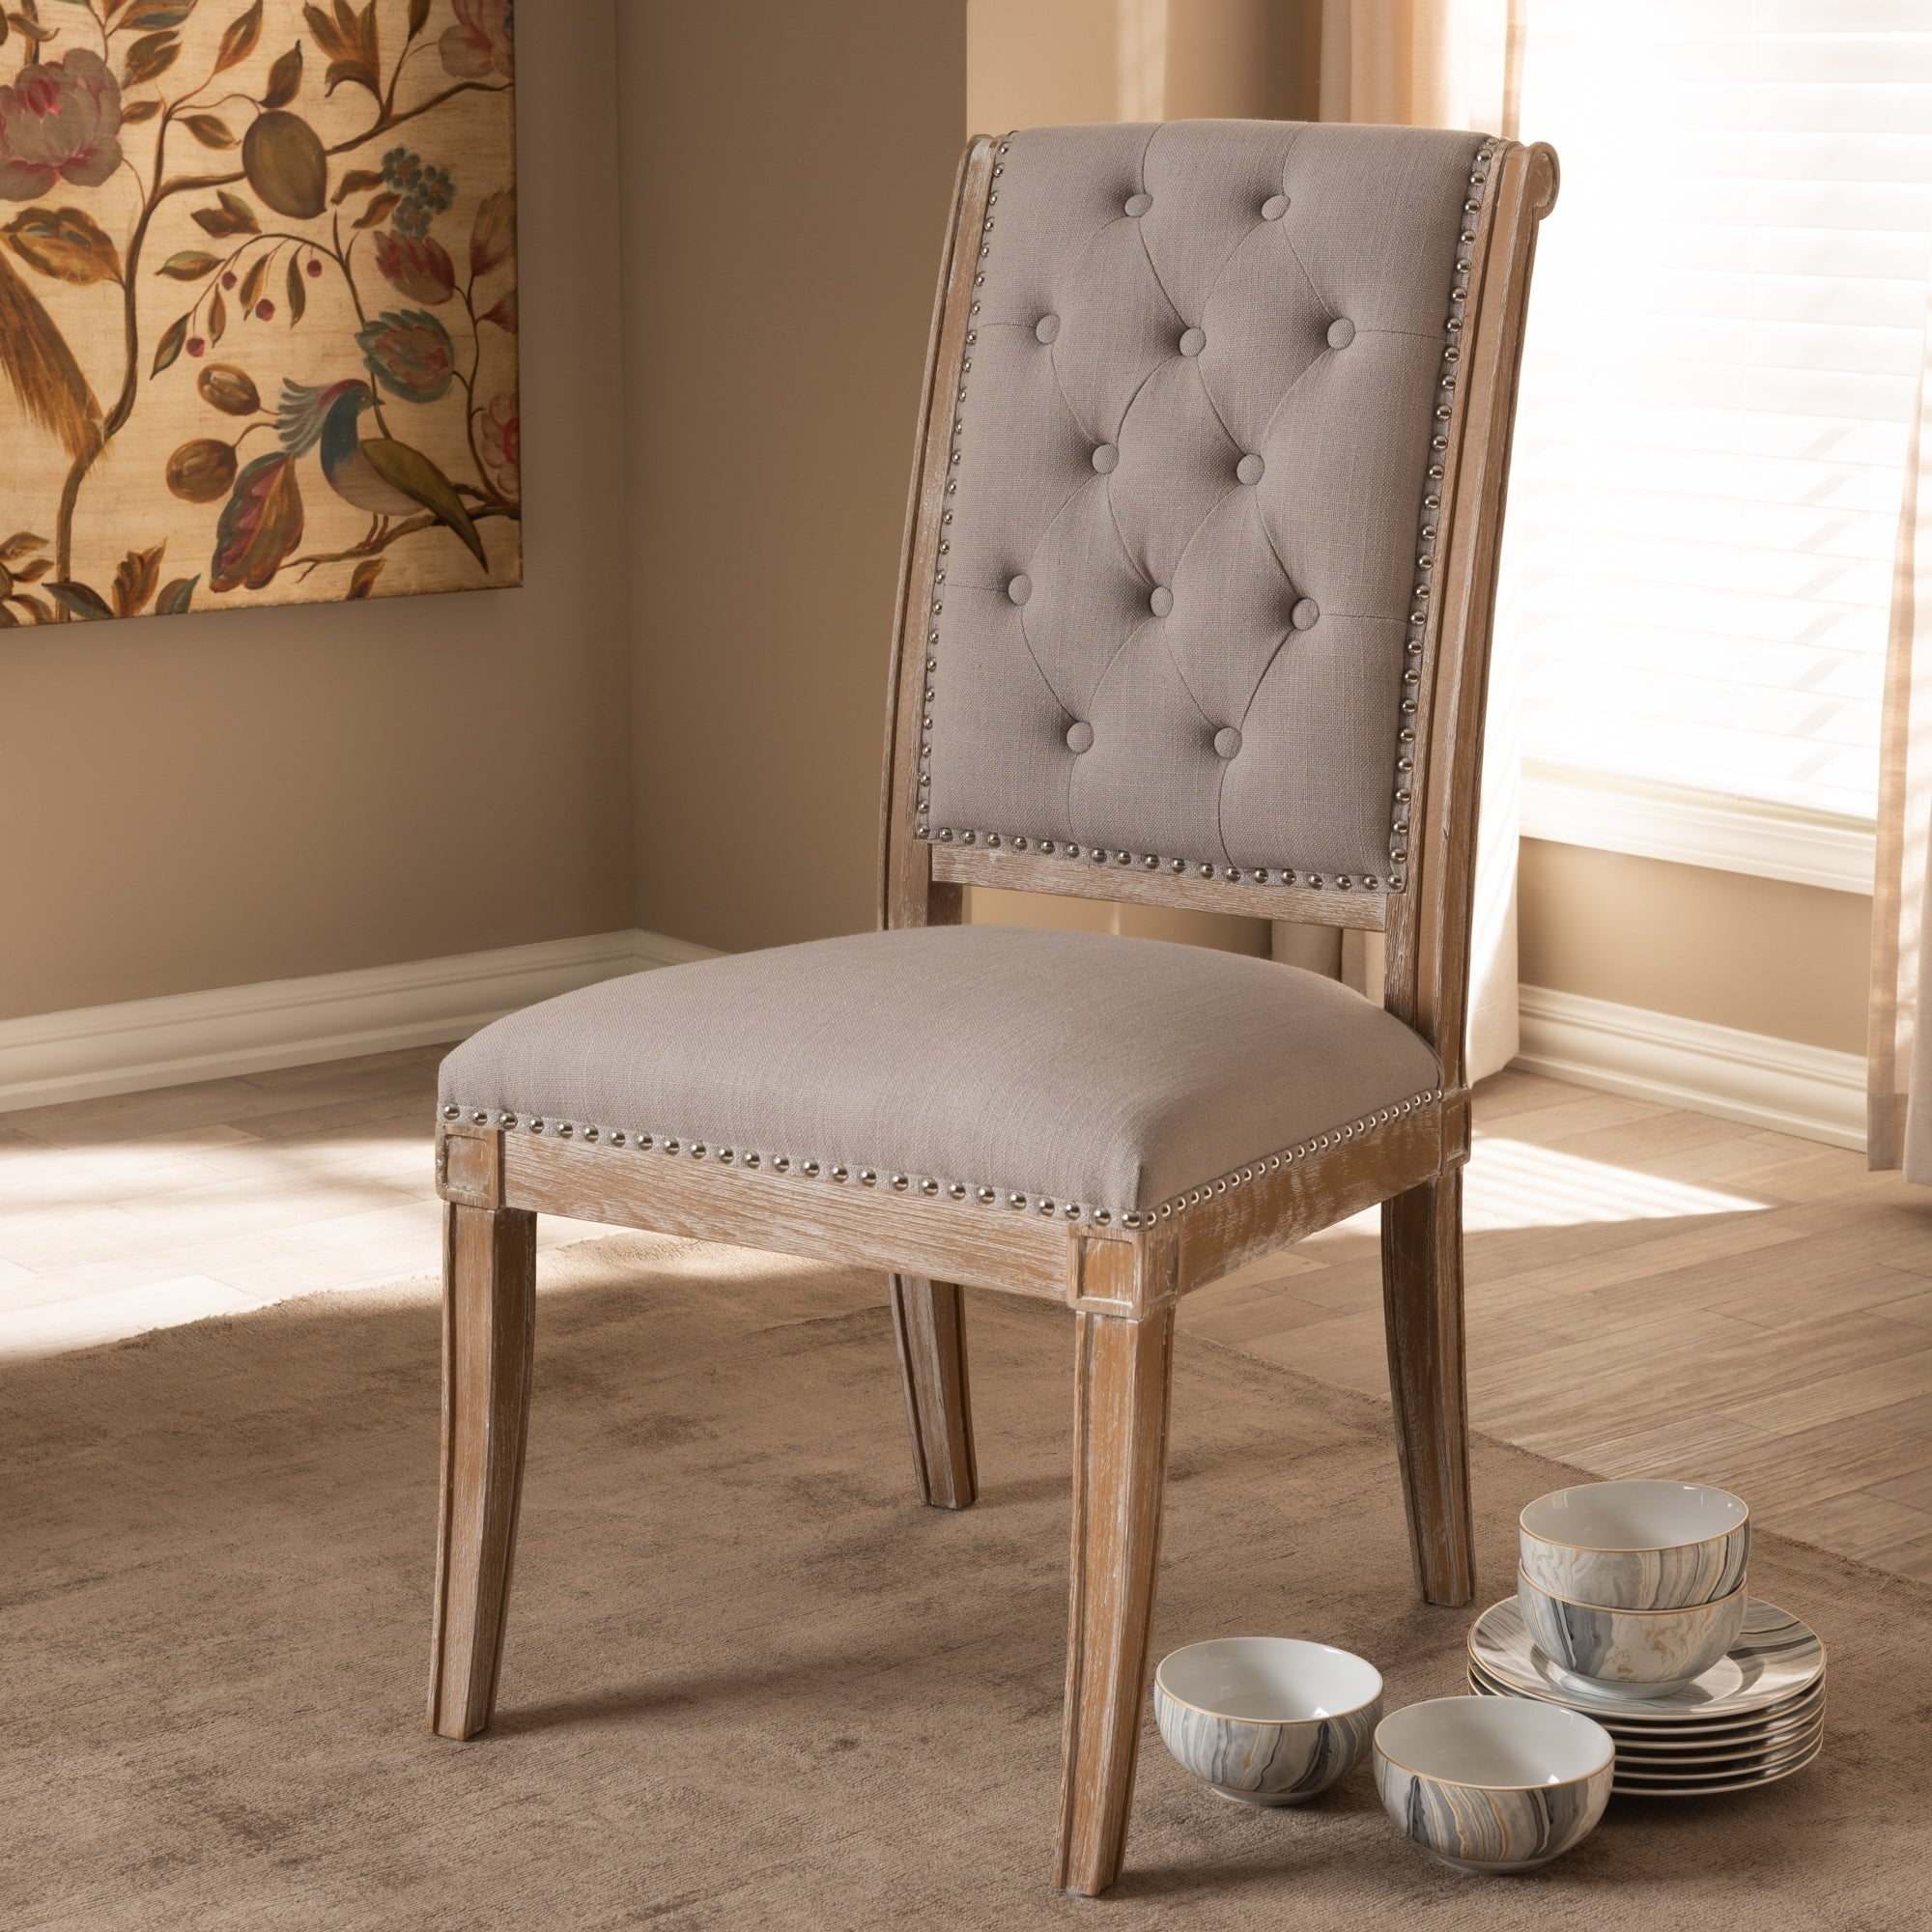 French Provincial Chair >> Shop French Provincial Beige Fabric Dining Chair By Baxton Studio